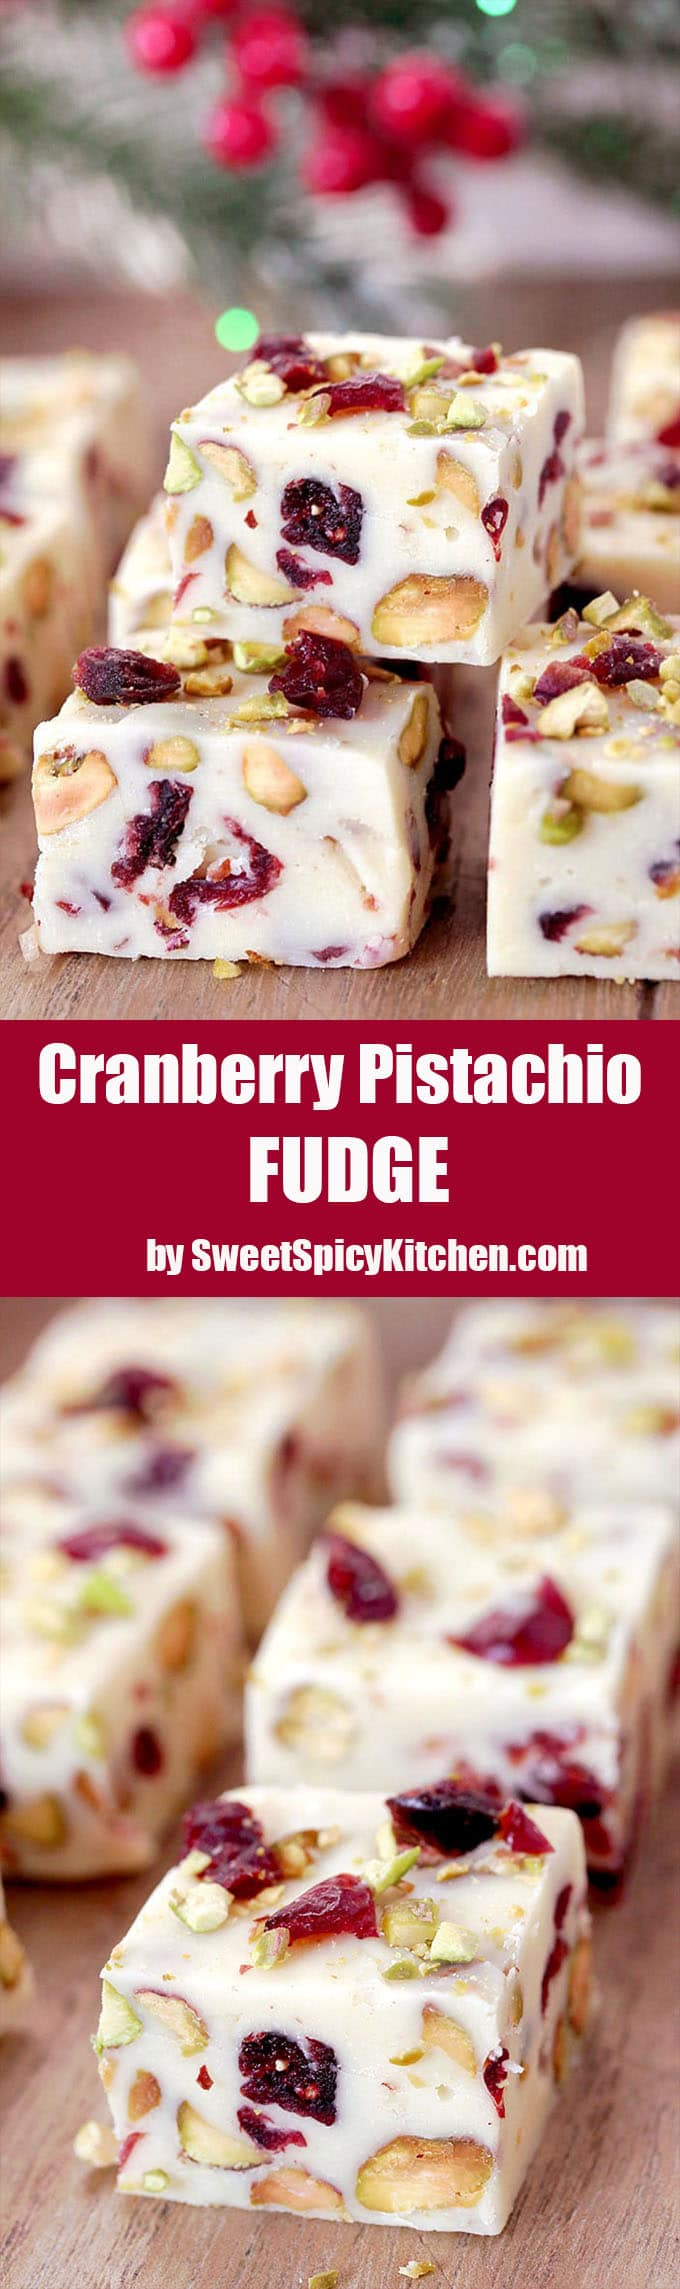 This quick and easy Cranberry Pistachio Fudge made of white chocolate, sweet condensed milk, dried cranberries and pistachios are just perfect for holidays like Thanksgiving, Christmas, New Year´s Eve…